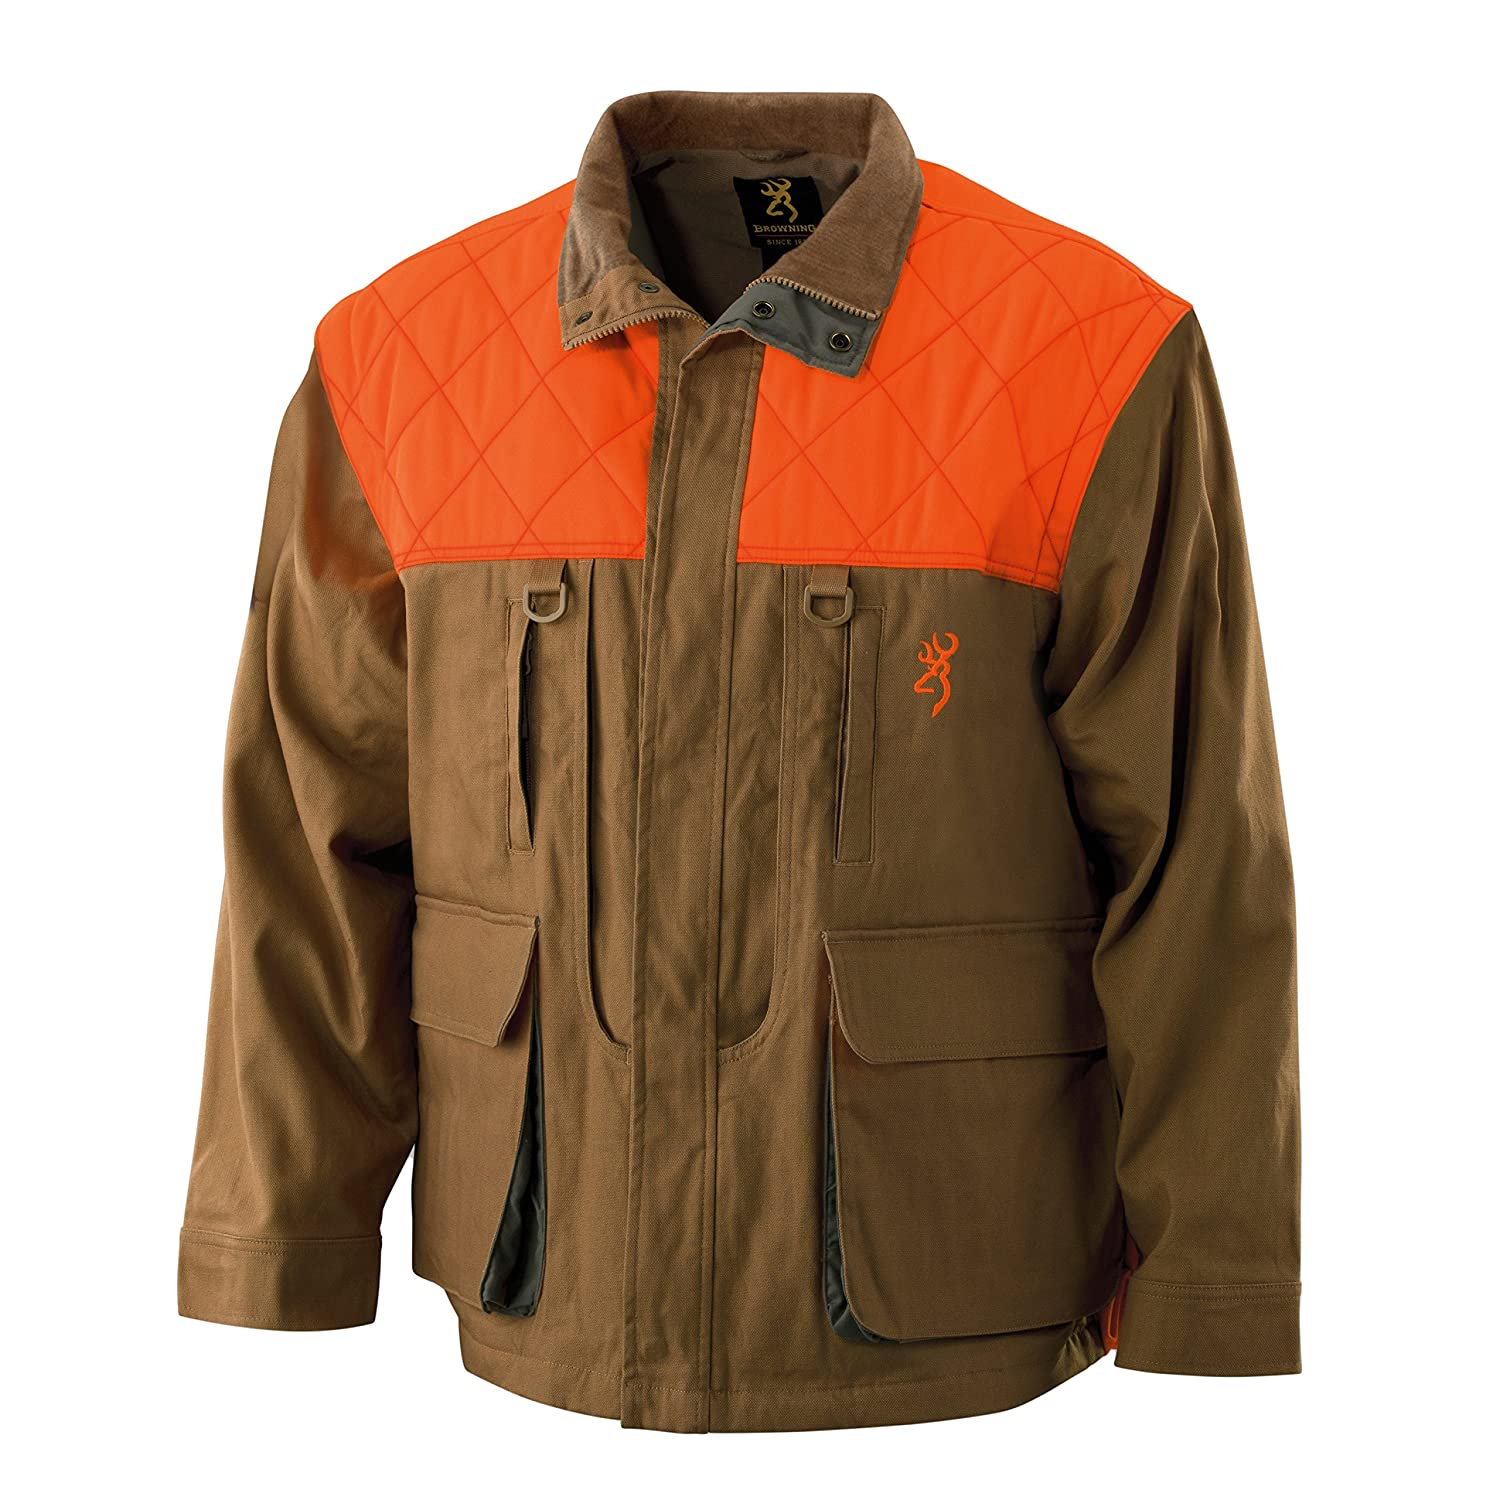 dcdda5272a0fb Amazon.com: Browning Pheasants Forever Upland Canvas Jacket: Sports &  Outdoors